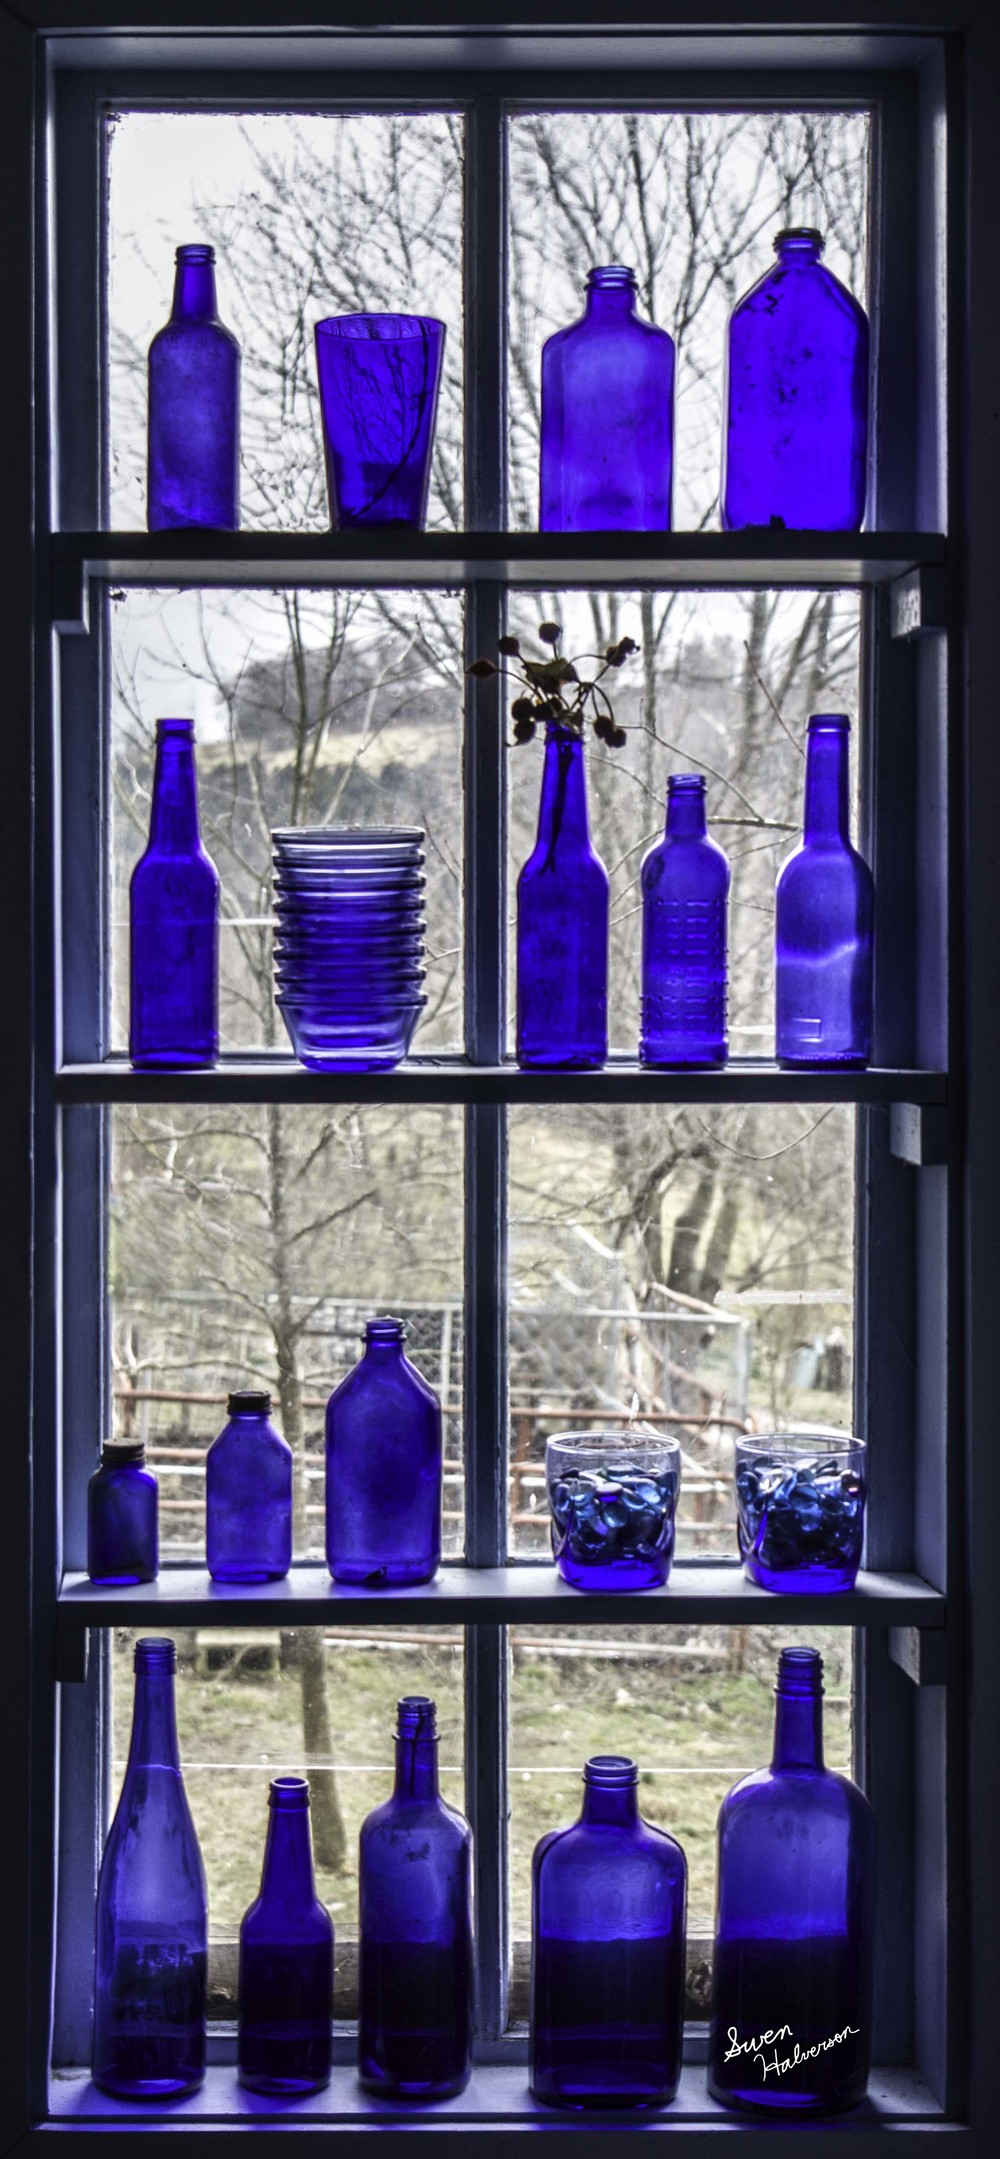 Theme: Melodic Title: Blue Jar Window